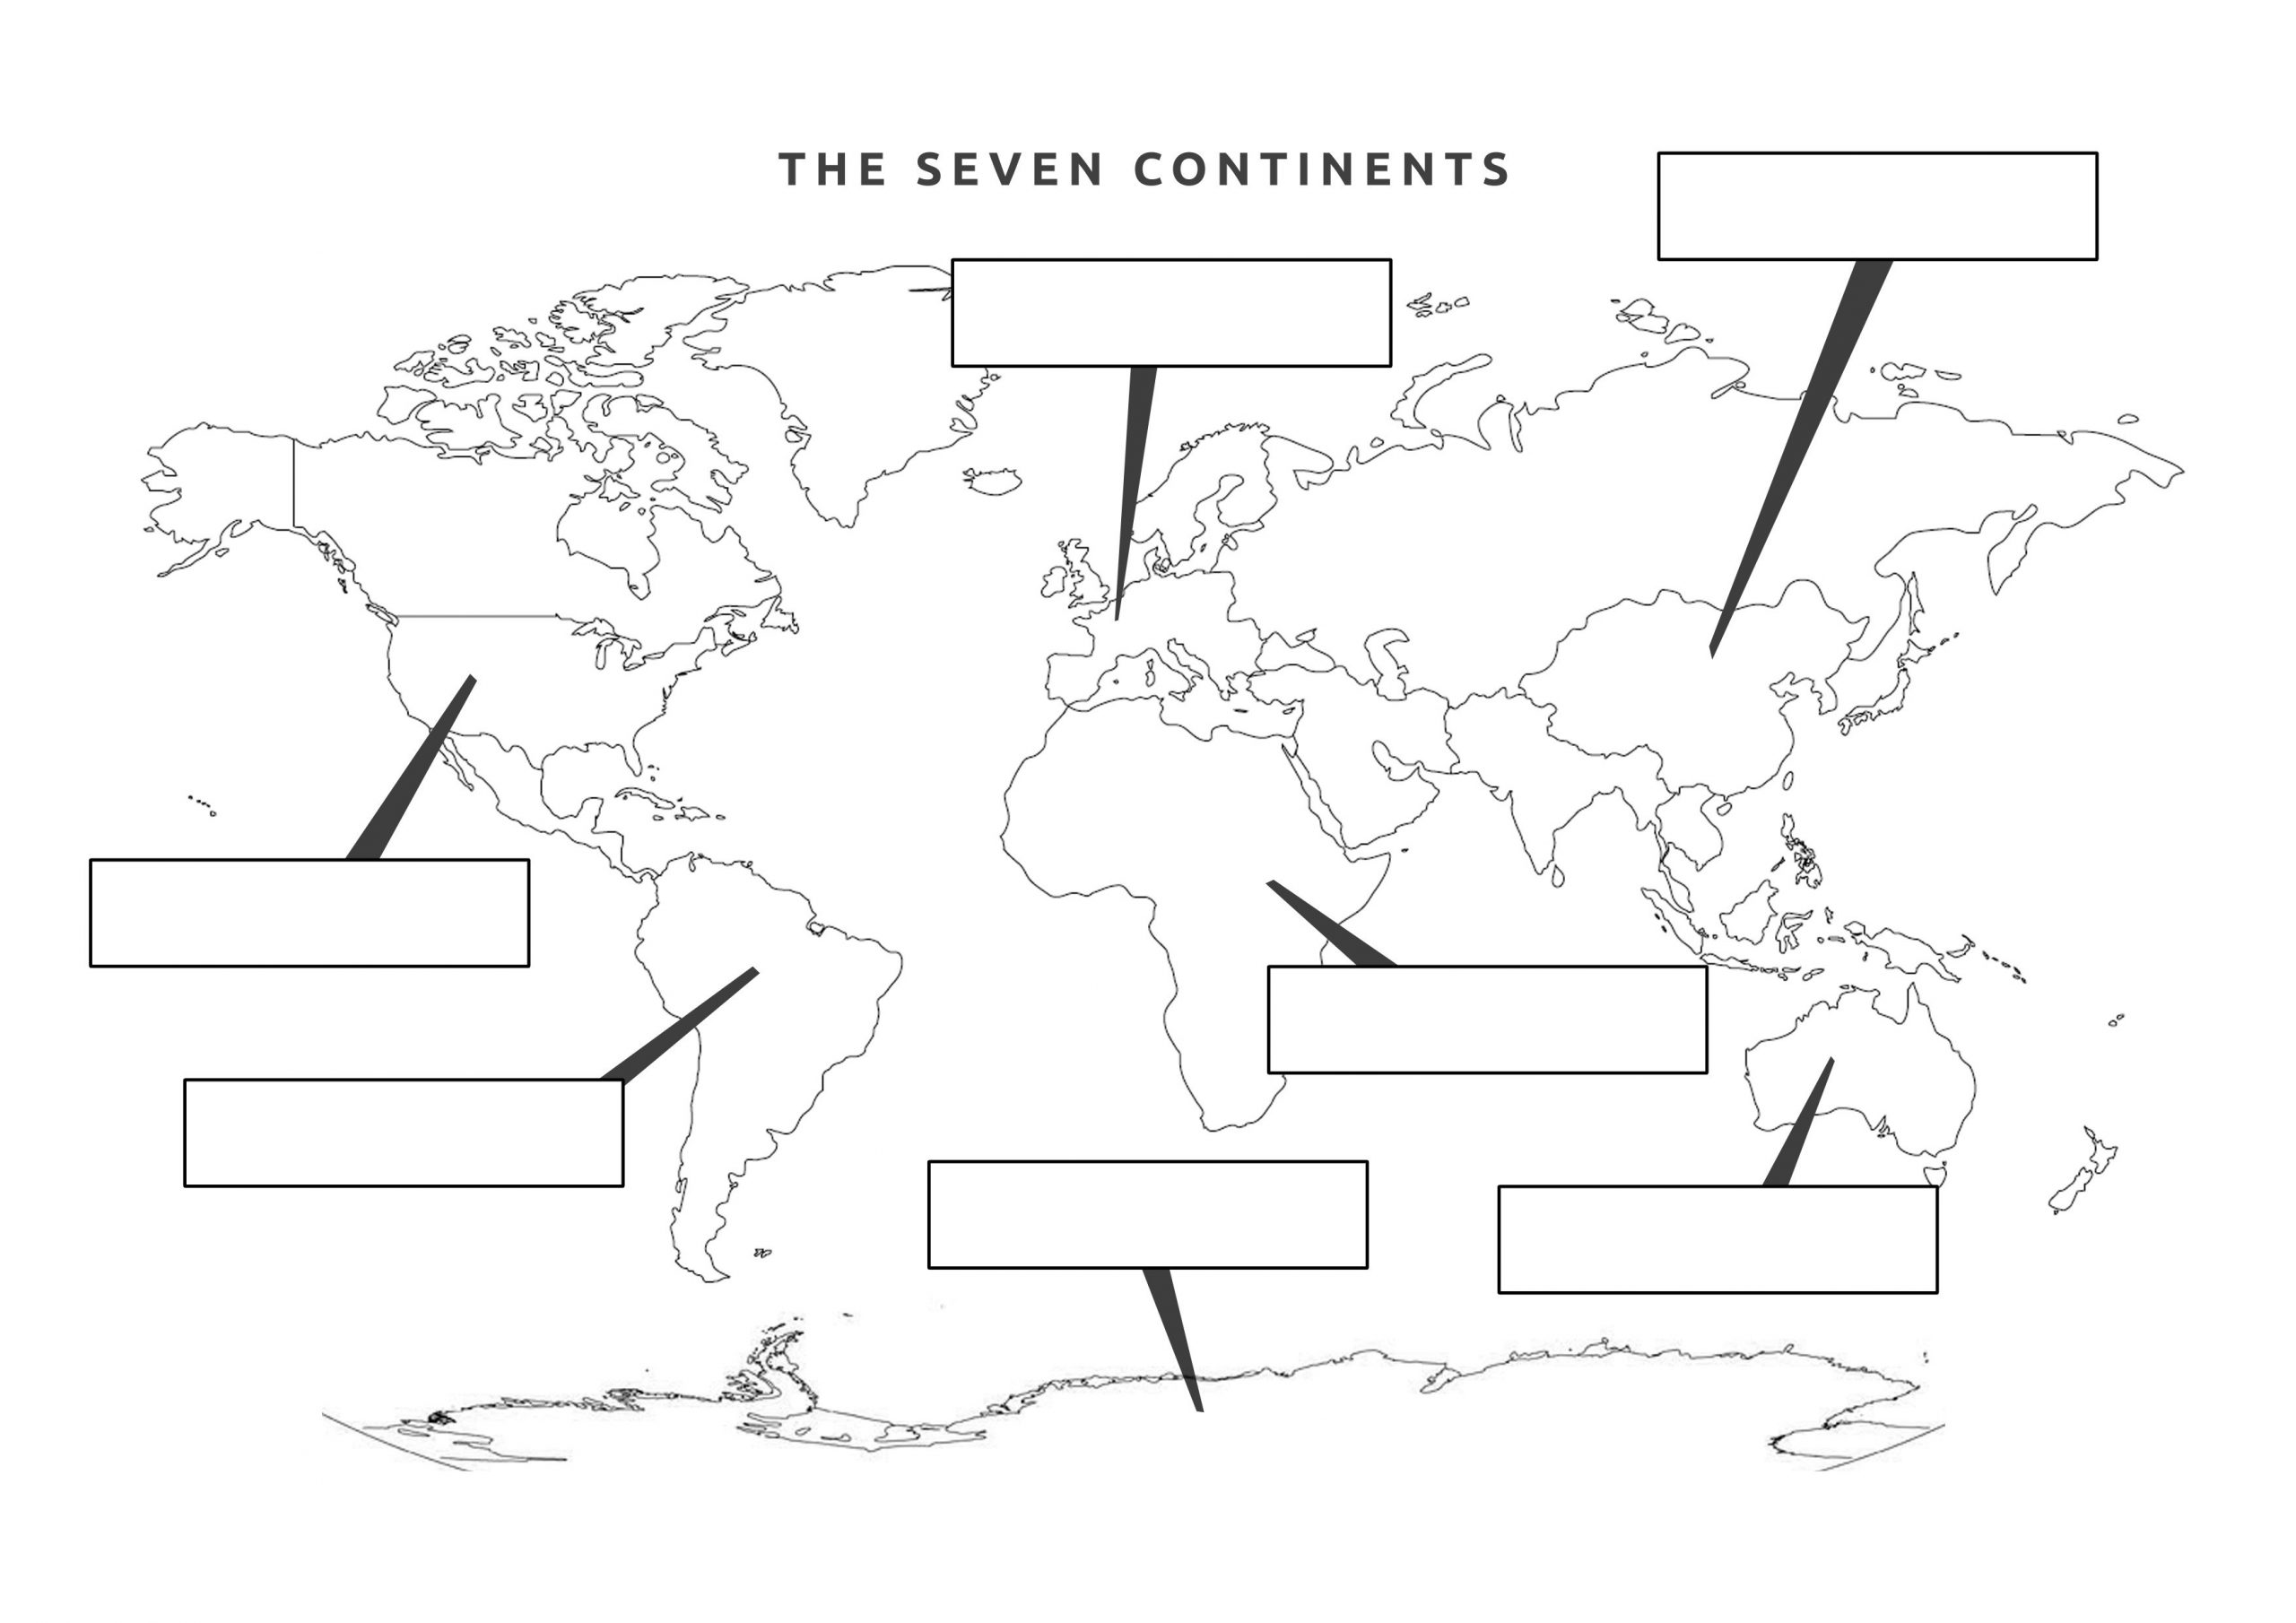 Label Continents and Oceans Printable 38 Free Printable Blank Continent Maps